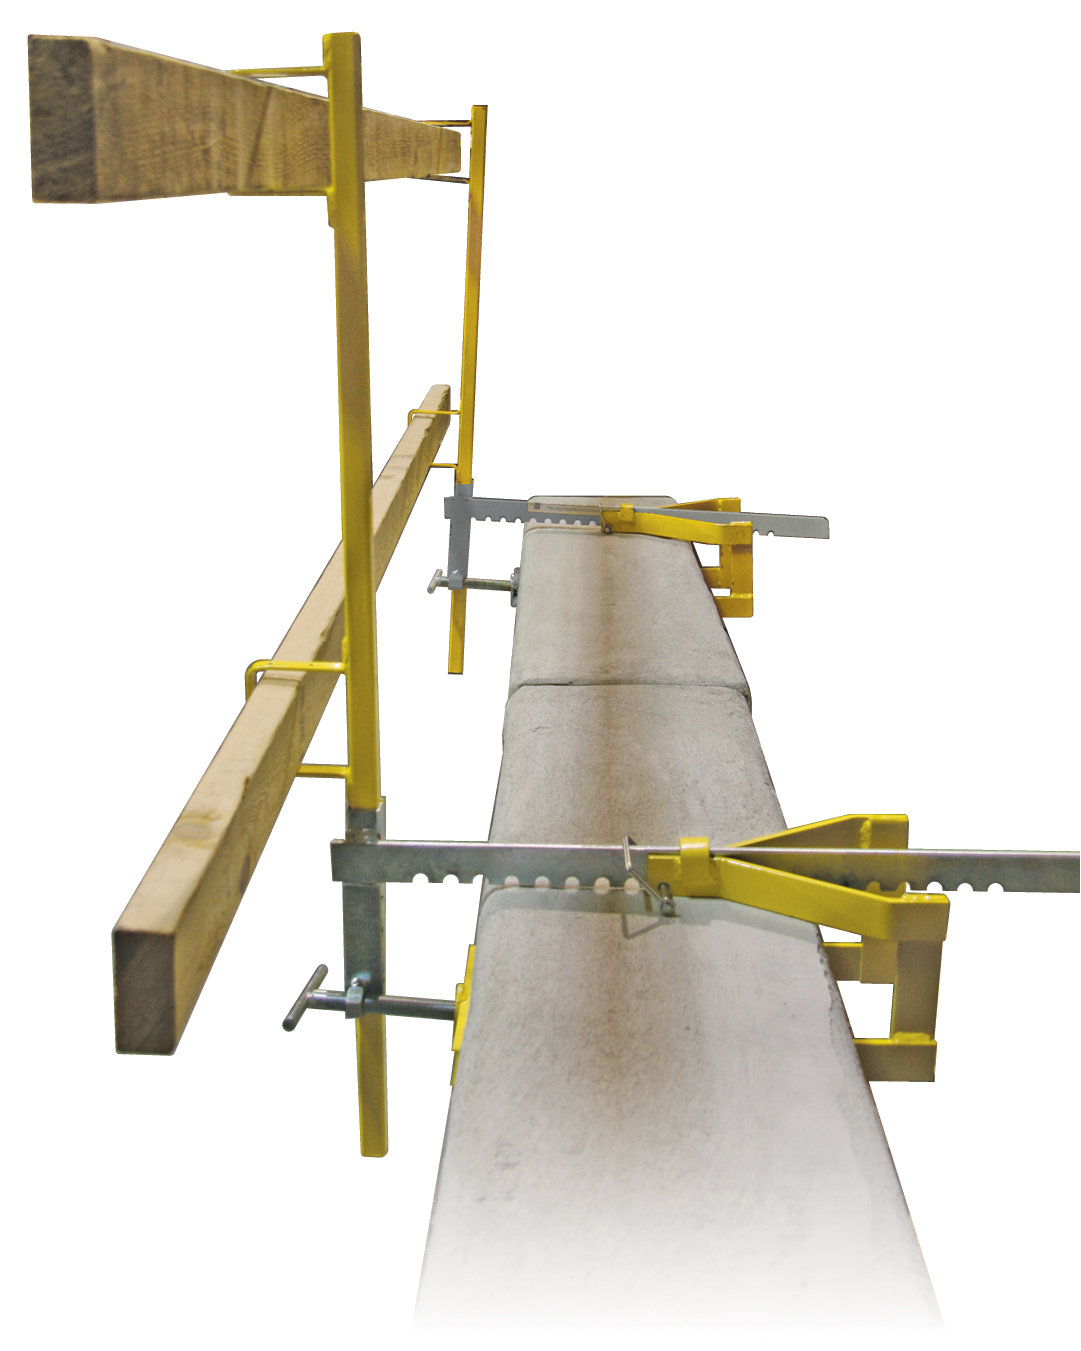 Personal Protective Equipment Fall Protection Systems